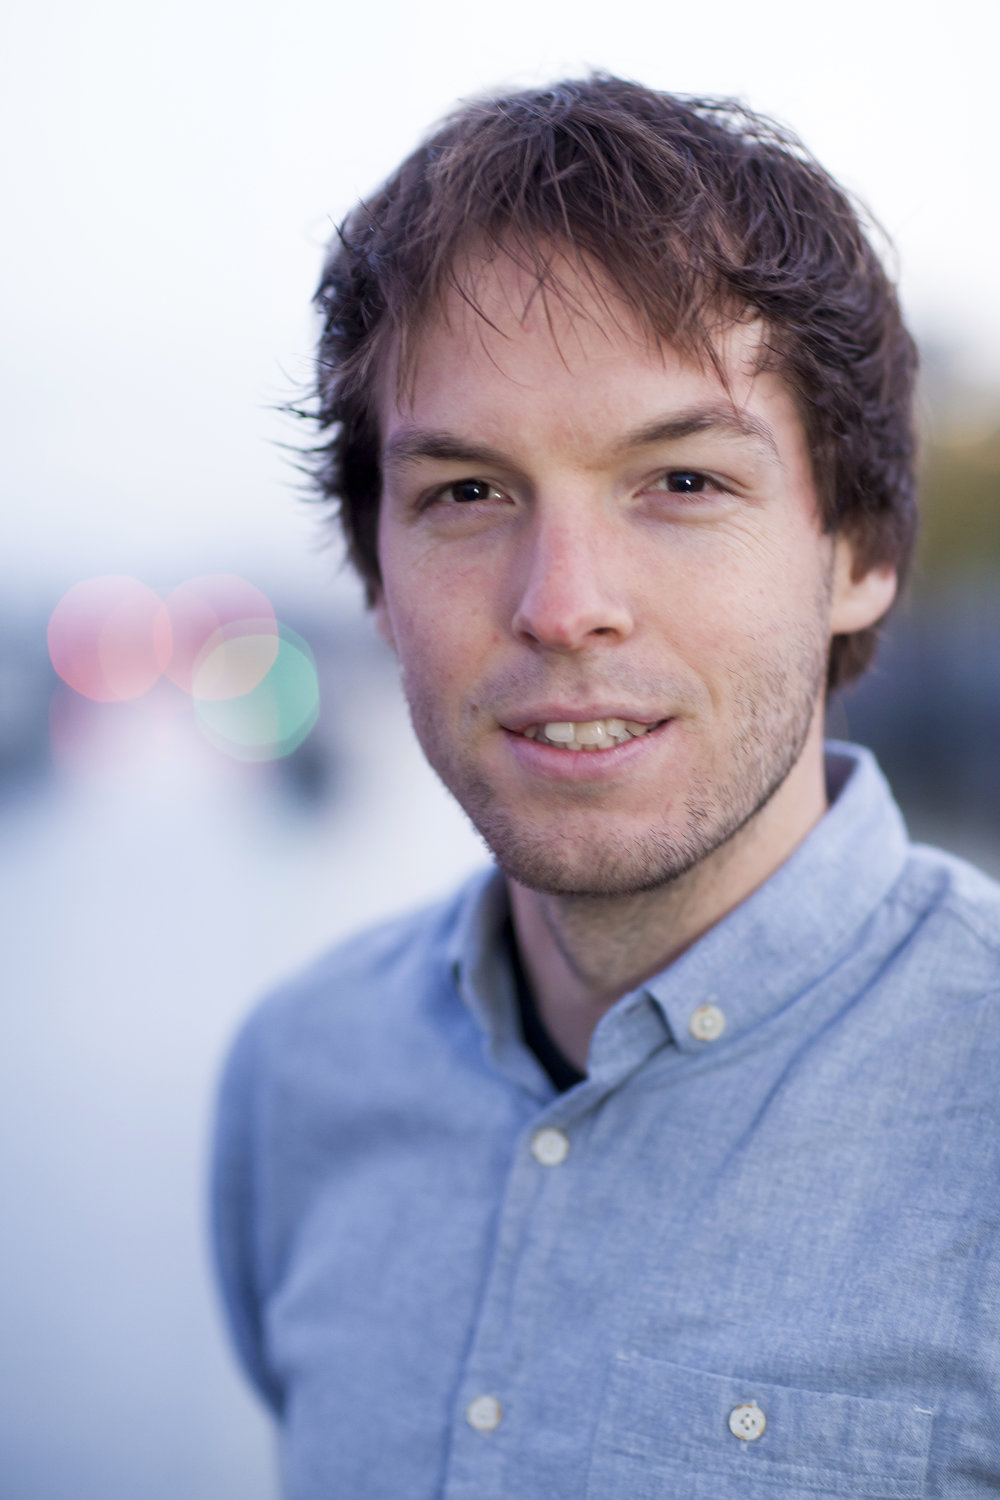 Pieter van de Glind, co-founder of shareNL and co-author of 'share - opportunities and challenges in the collaborative economy'